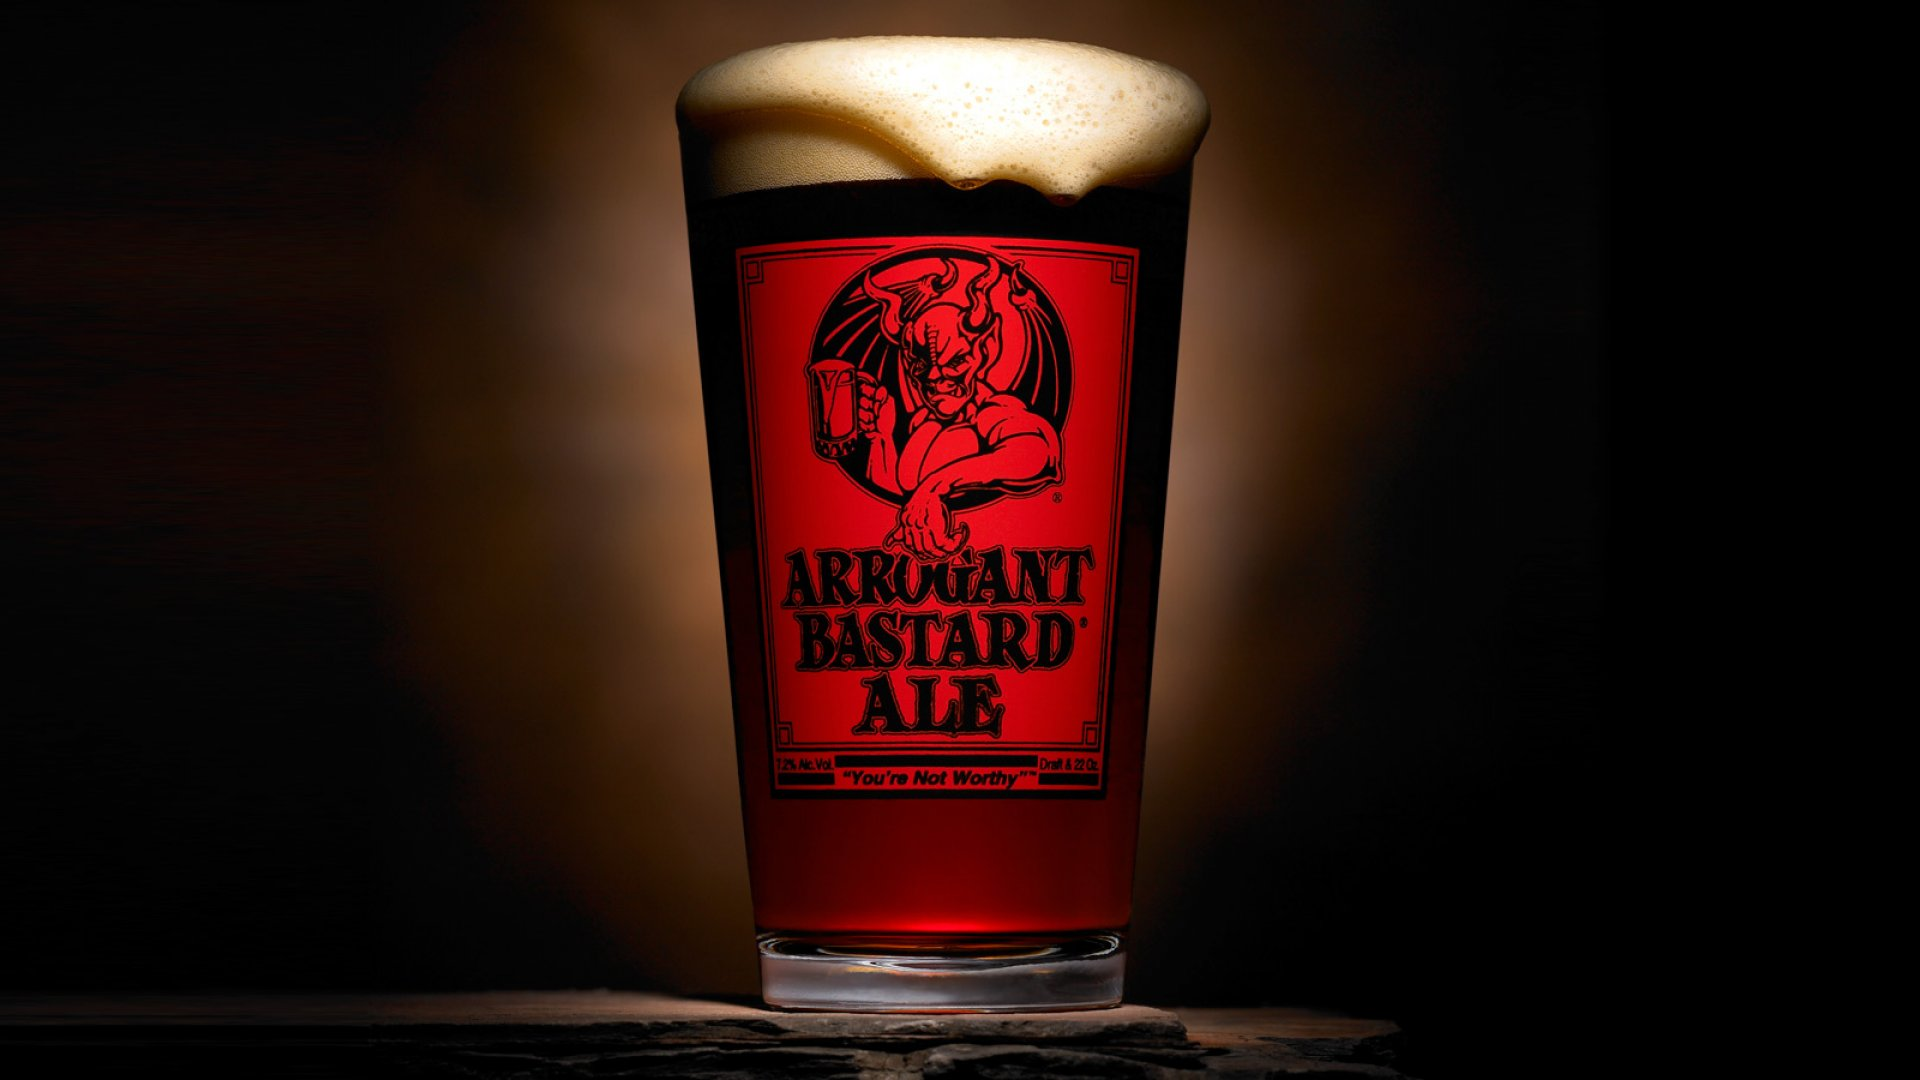 How to Market Like an Arrogant Bastard